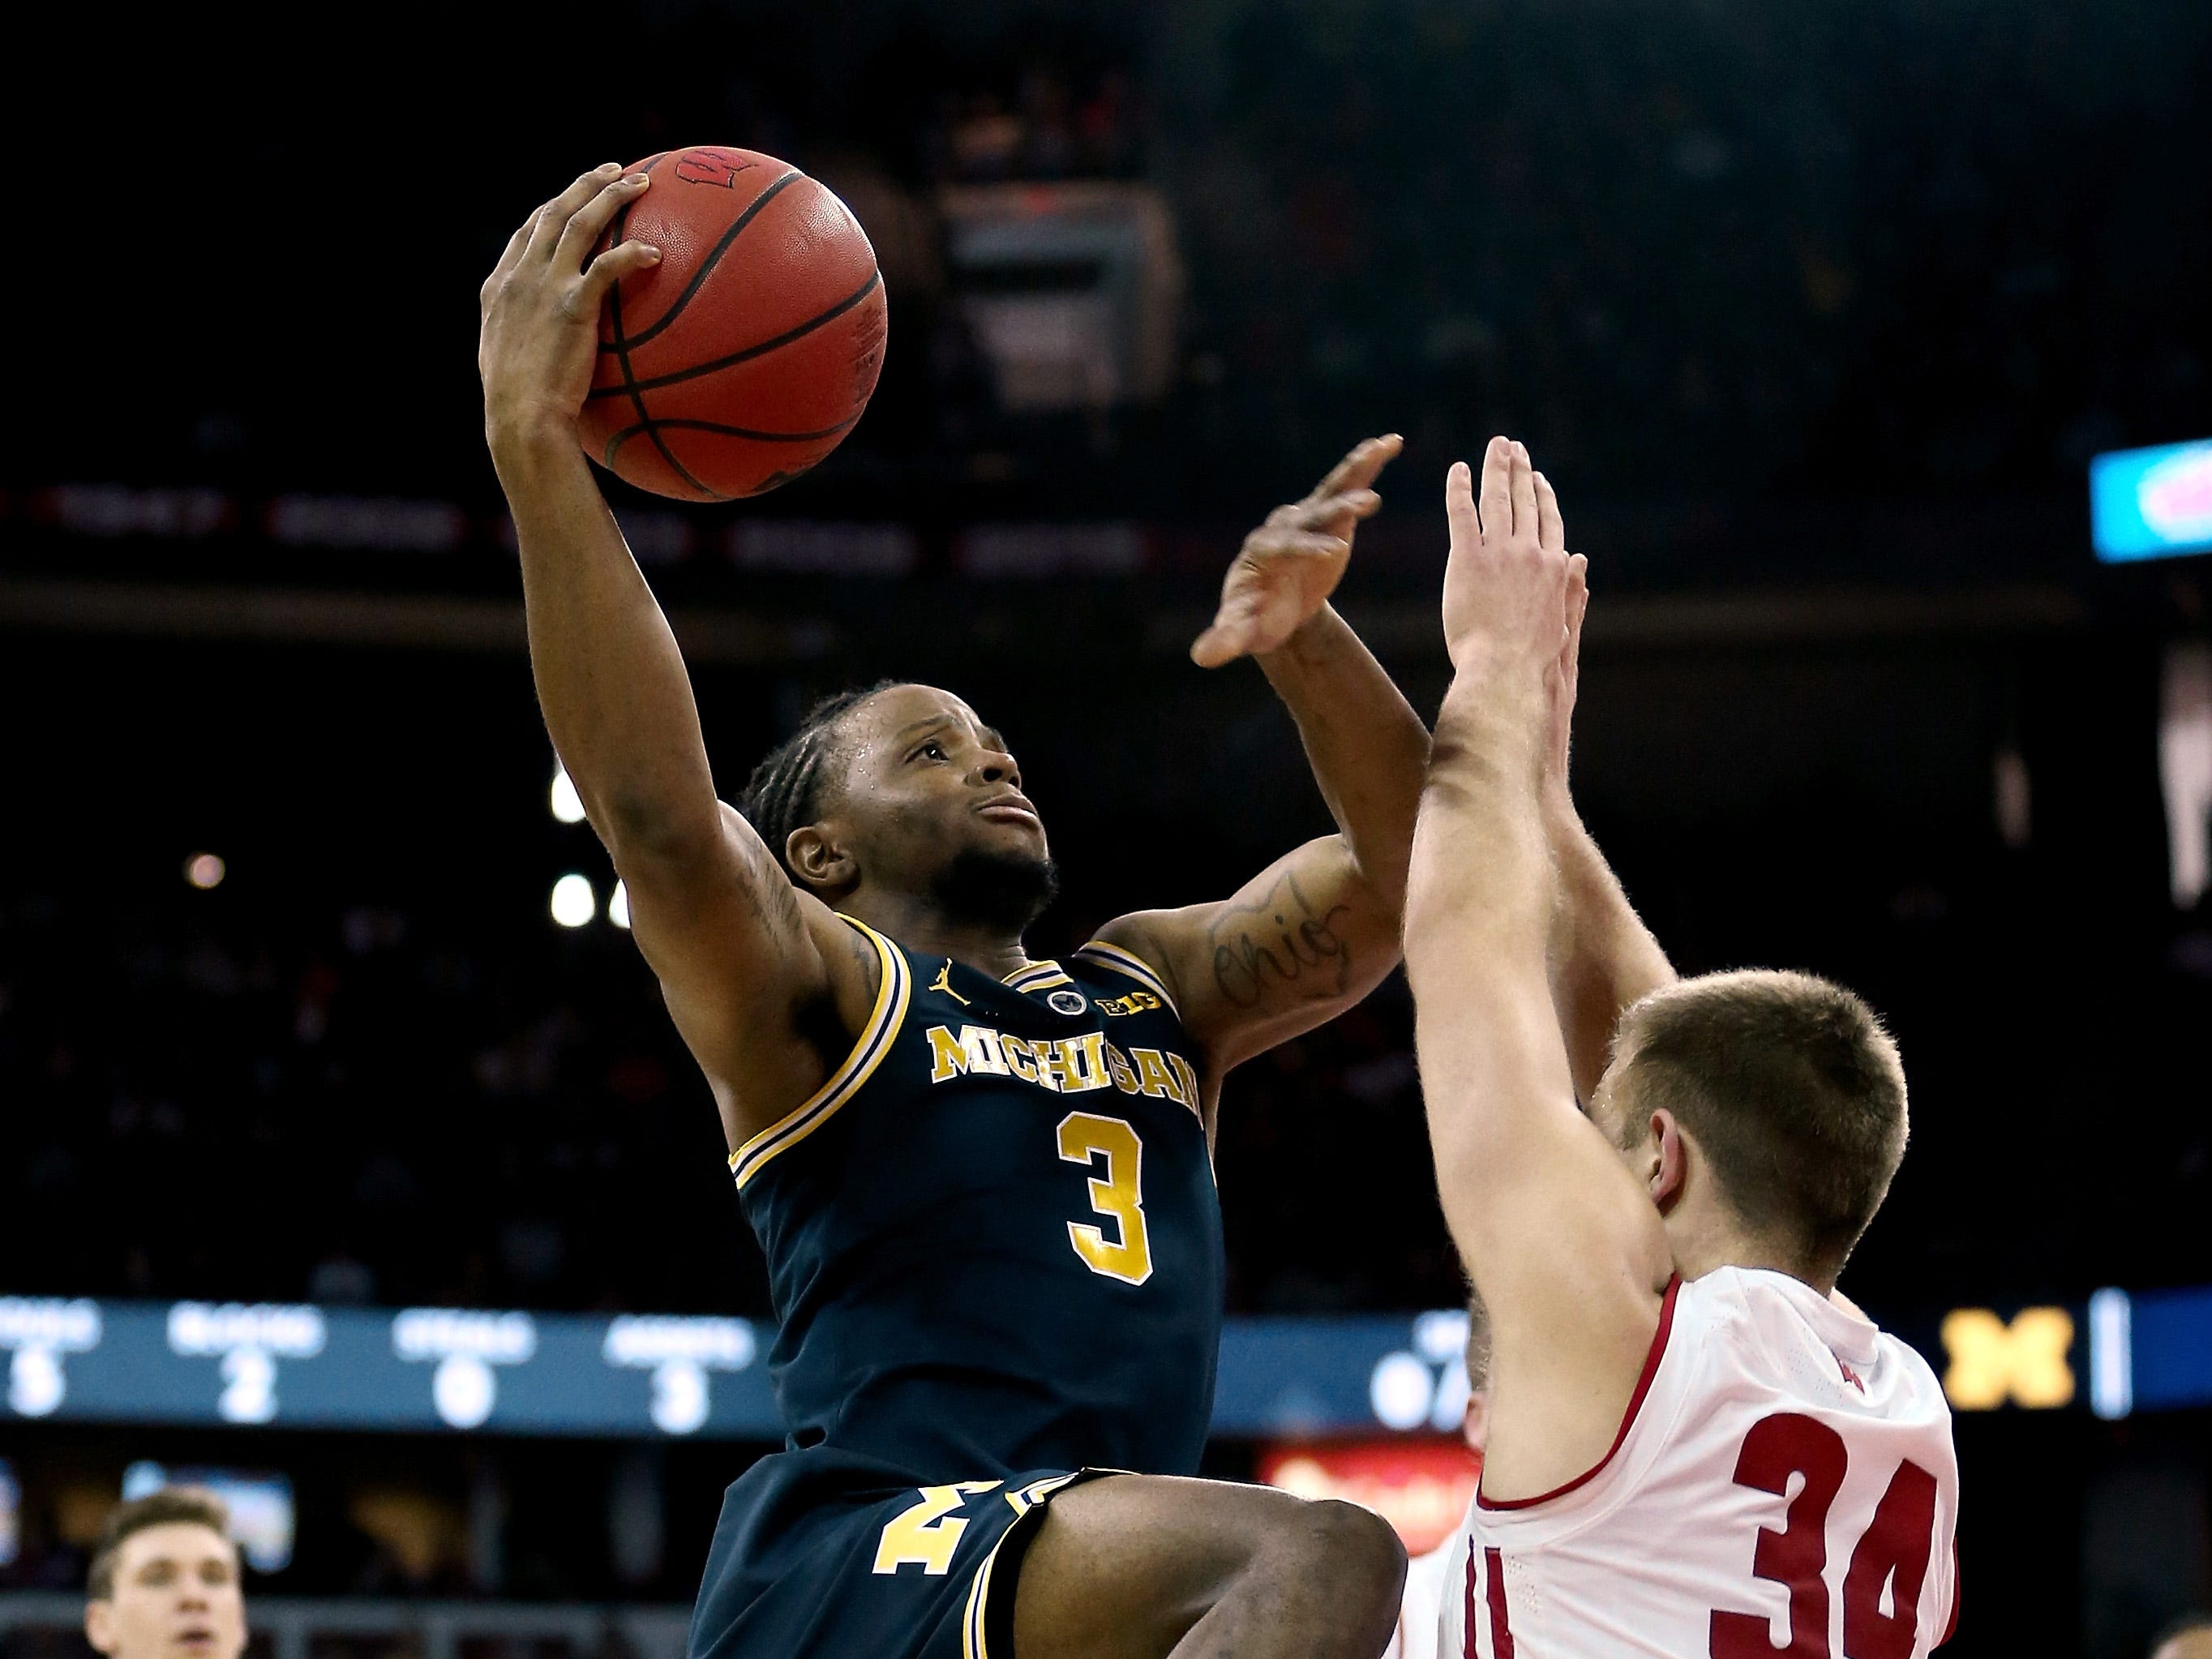 Michigan's Zavier Simpson attempts a shot while guarded by Wisconsin's Brad Davison in the first half at the Kohl Center, Jan. 19, 2019 in Madison, Wisc.